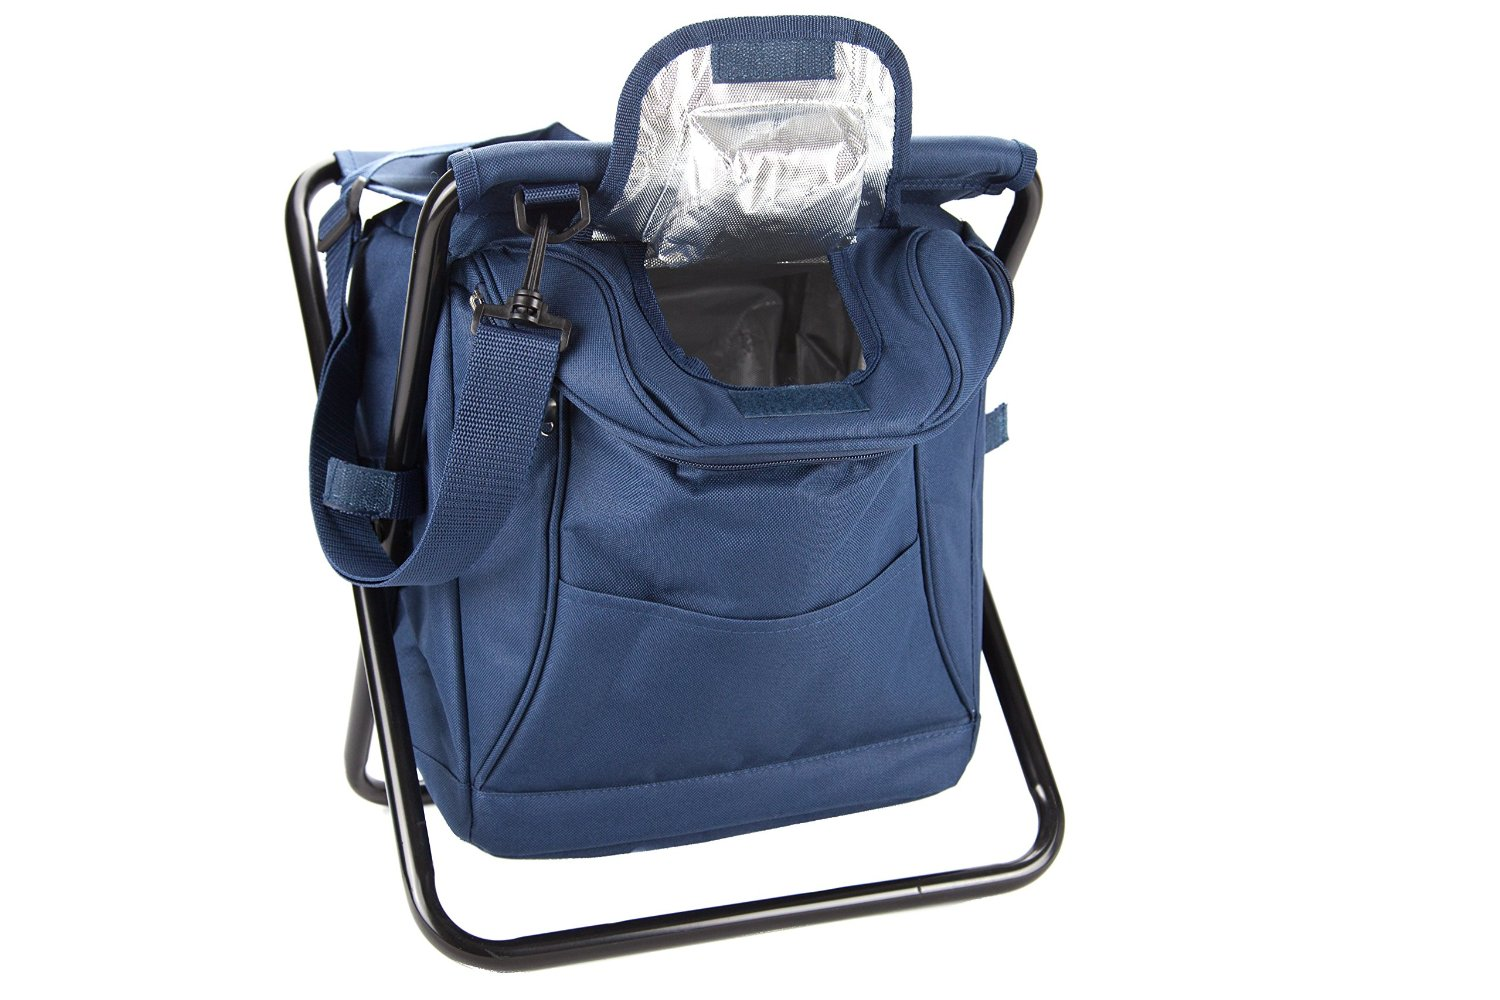 3 in 1 Backpack Cooler Chair Insulated Cooler Stool Collapsible - Walmart.com  sc 1 st  Walmart & 3 in 1 Backpack Cooler Chair Insulated Cooler Stool Collapsible ...